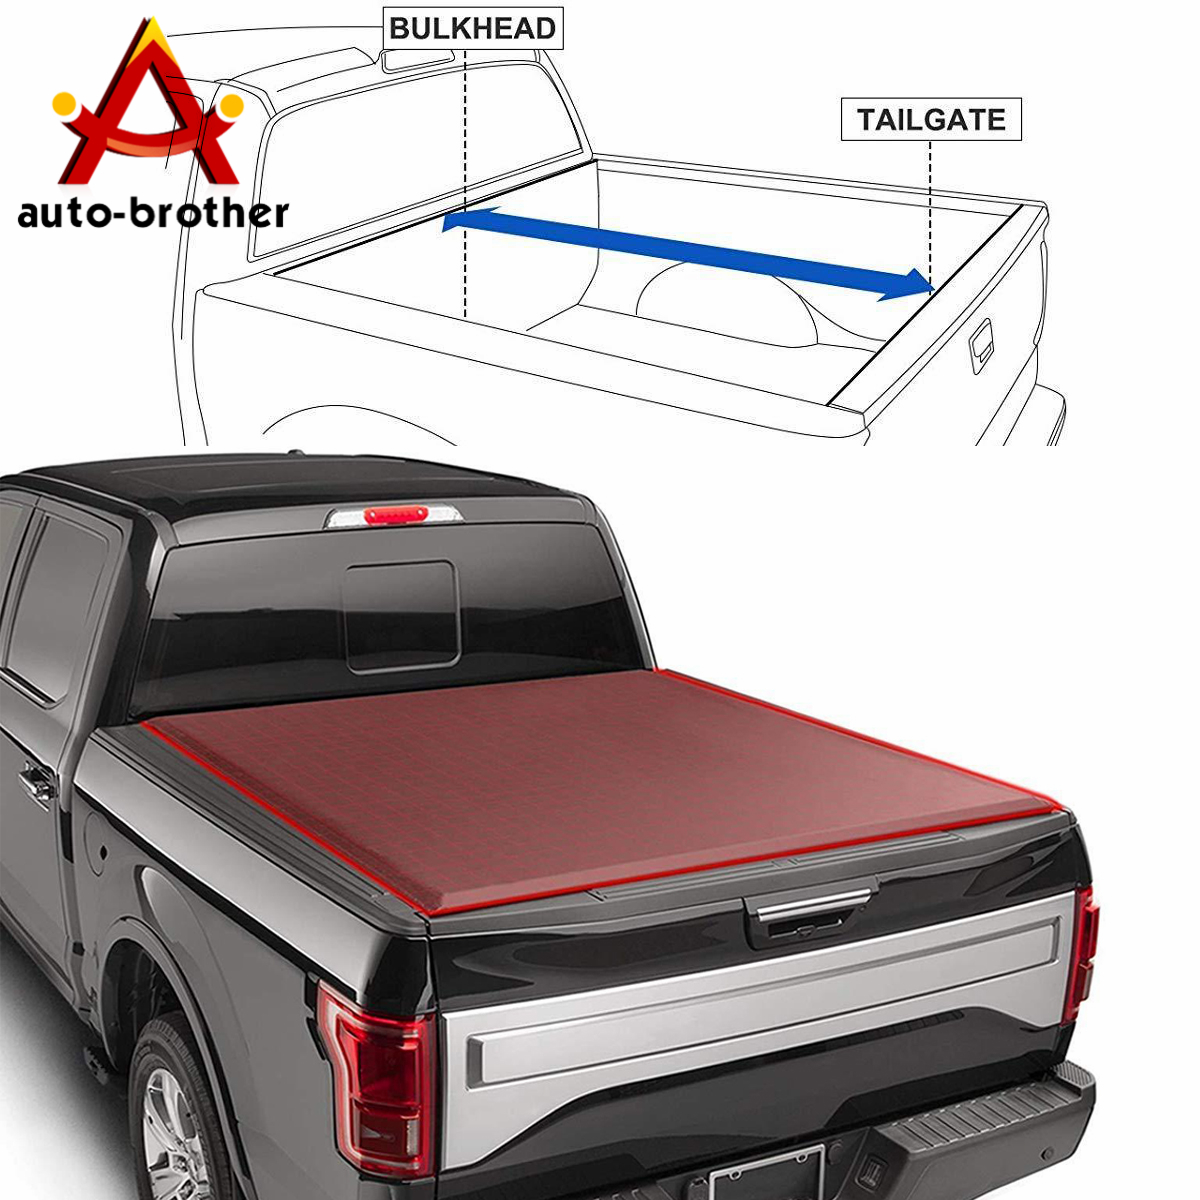 Details About Tri Fold Truck Bed Tonneau Cover Soft For Toyota Tacoma 2016 2019 5ft